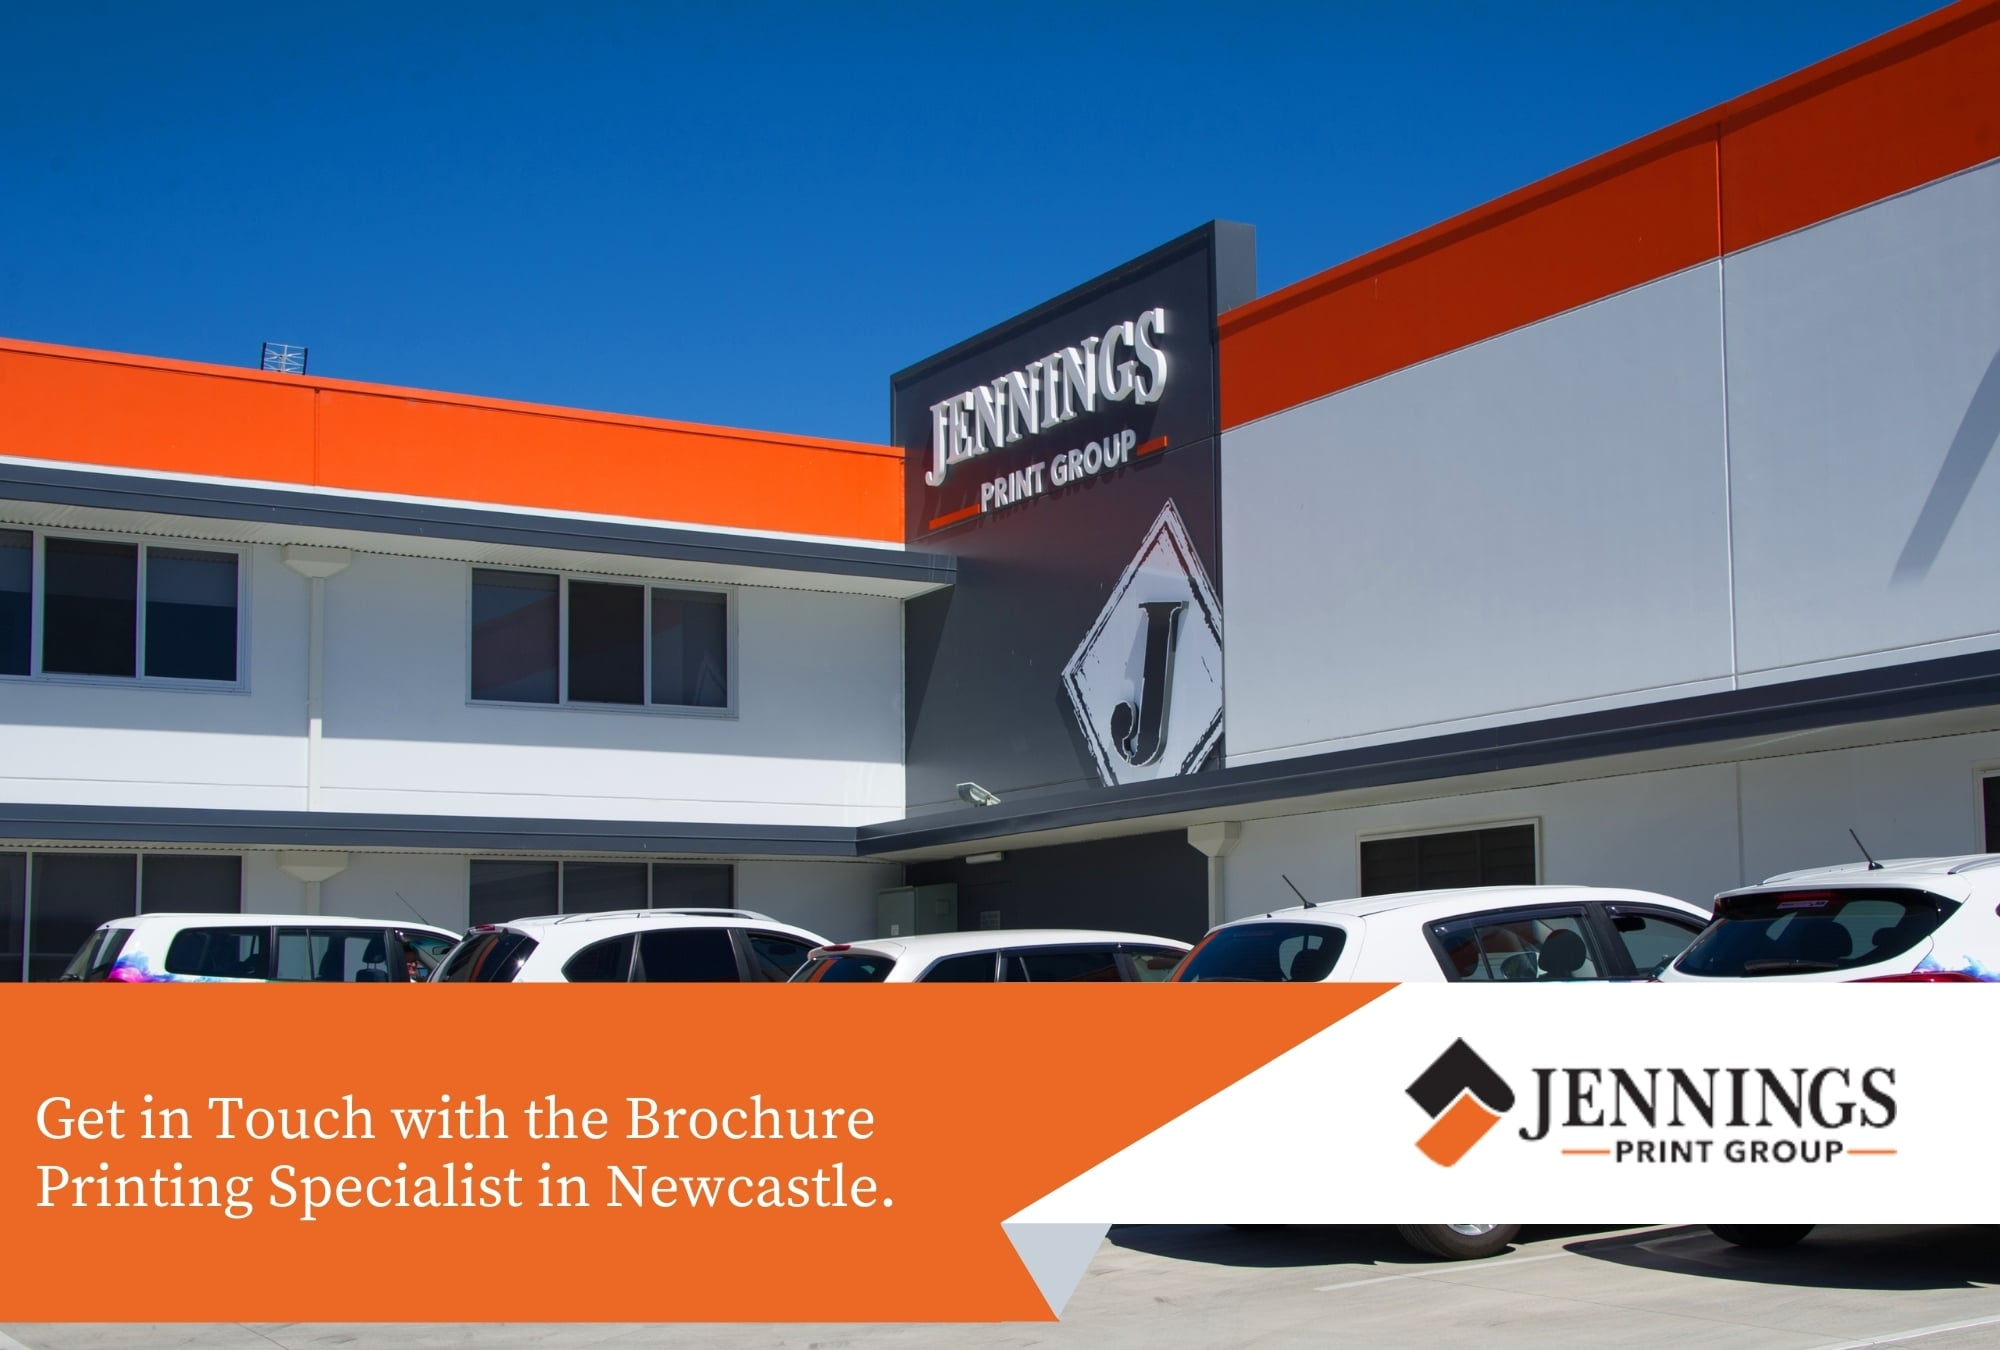 Get in Touch with the Brochure Printing Specialist in Newcastle